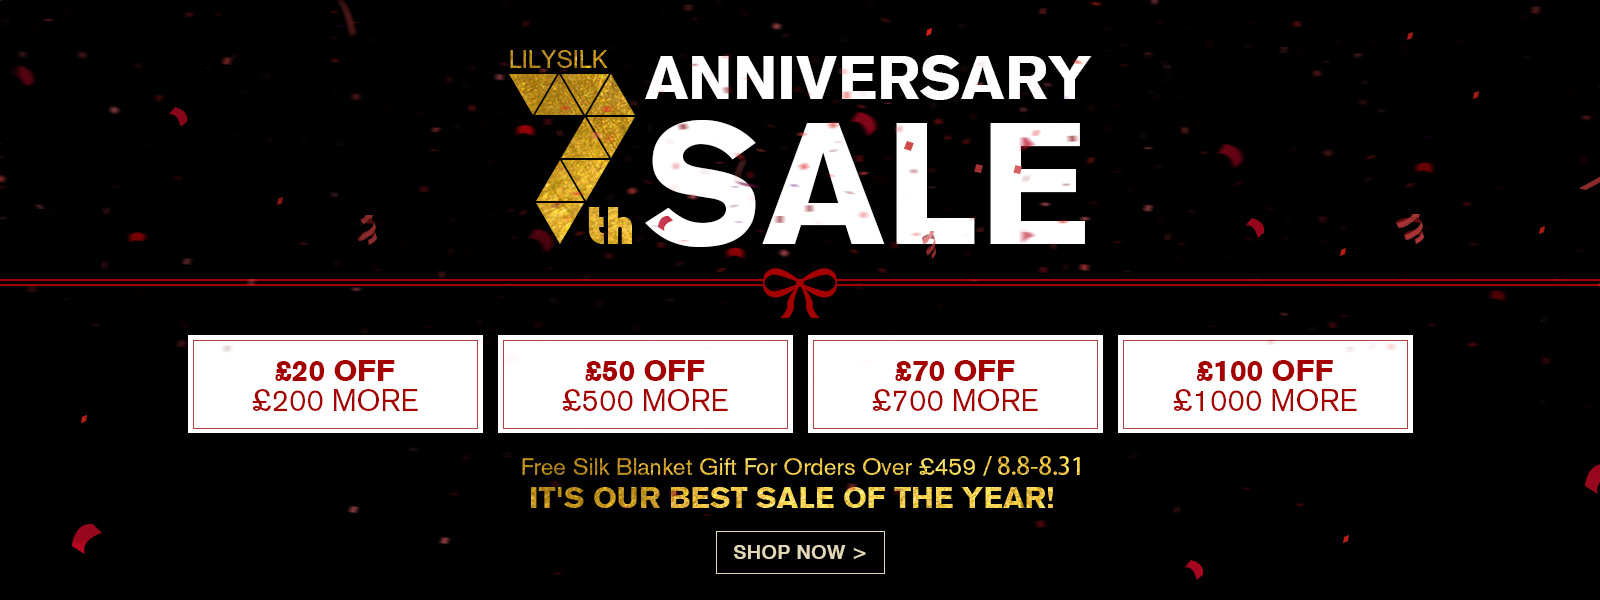 LilySilk LilySilk: up to £100 off silk products